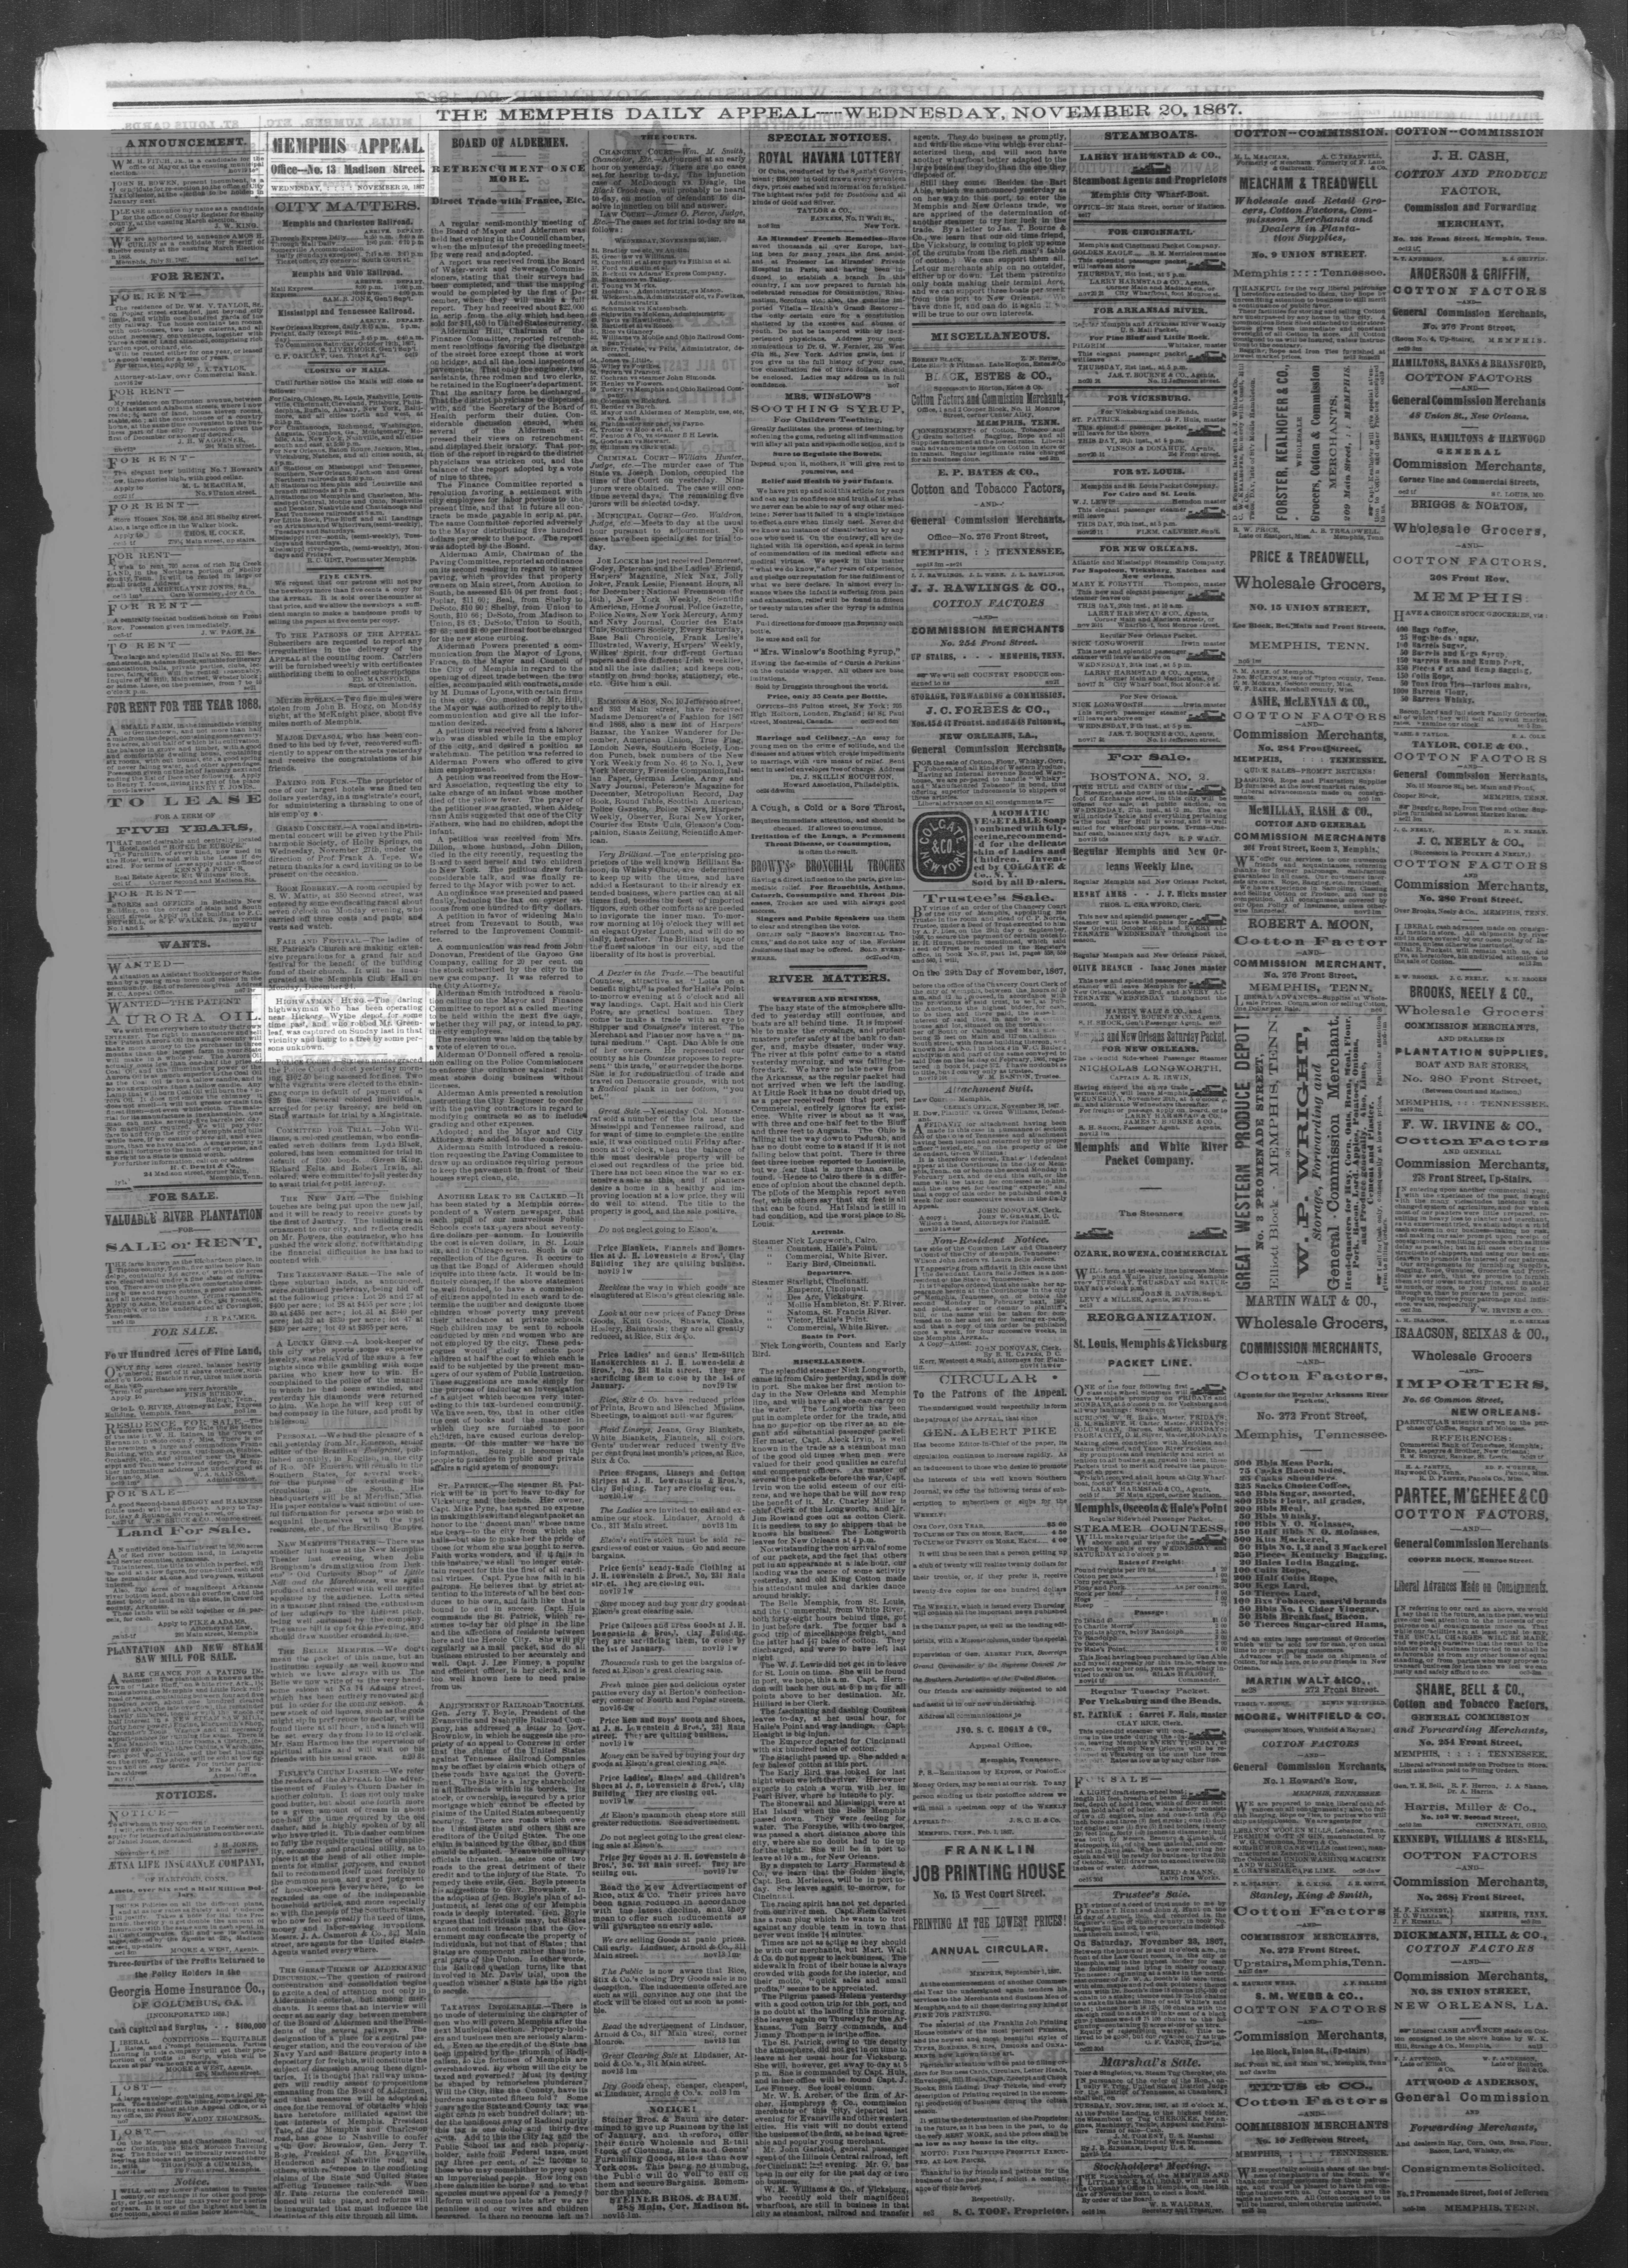 Memphis Daily Appeal, 11/20/1867